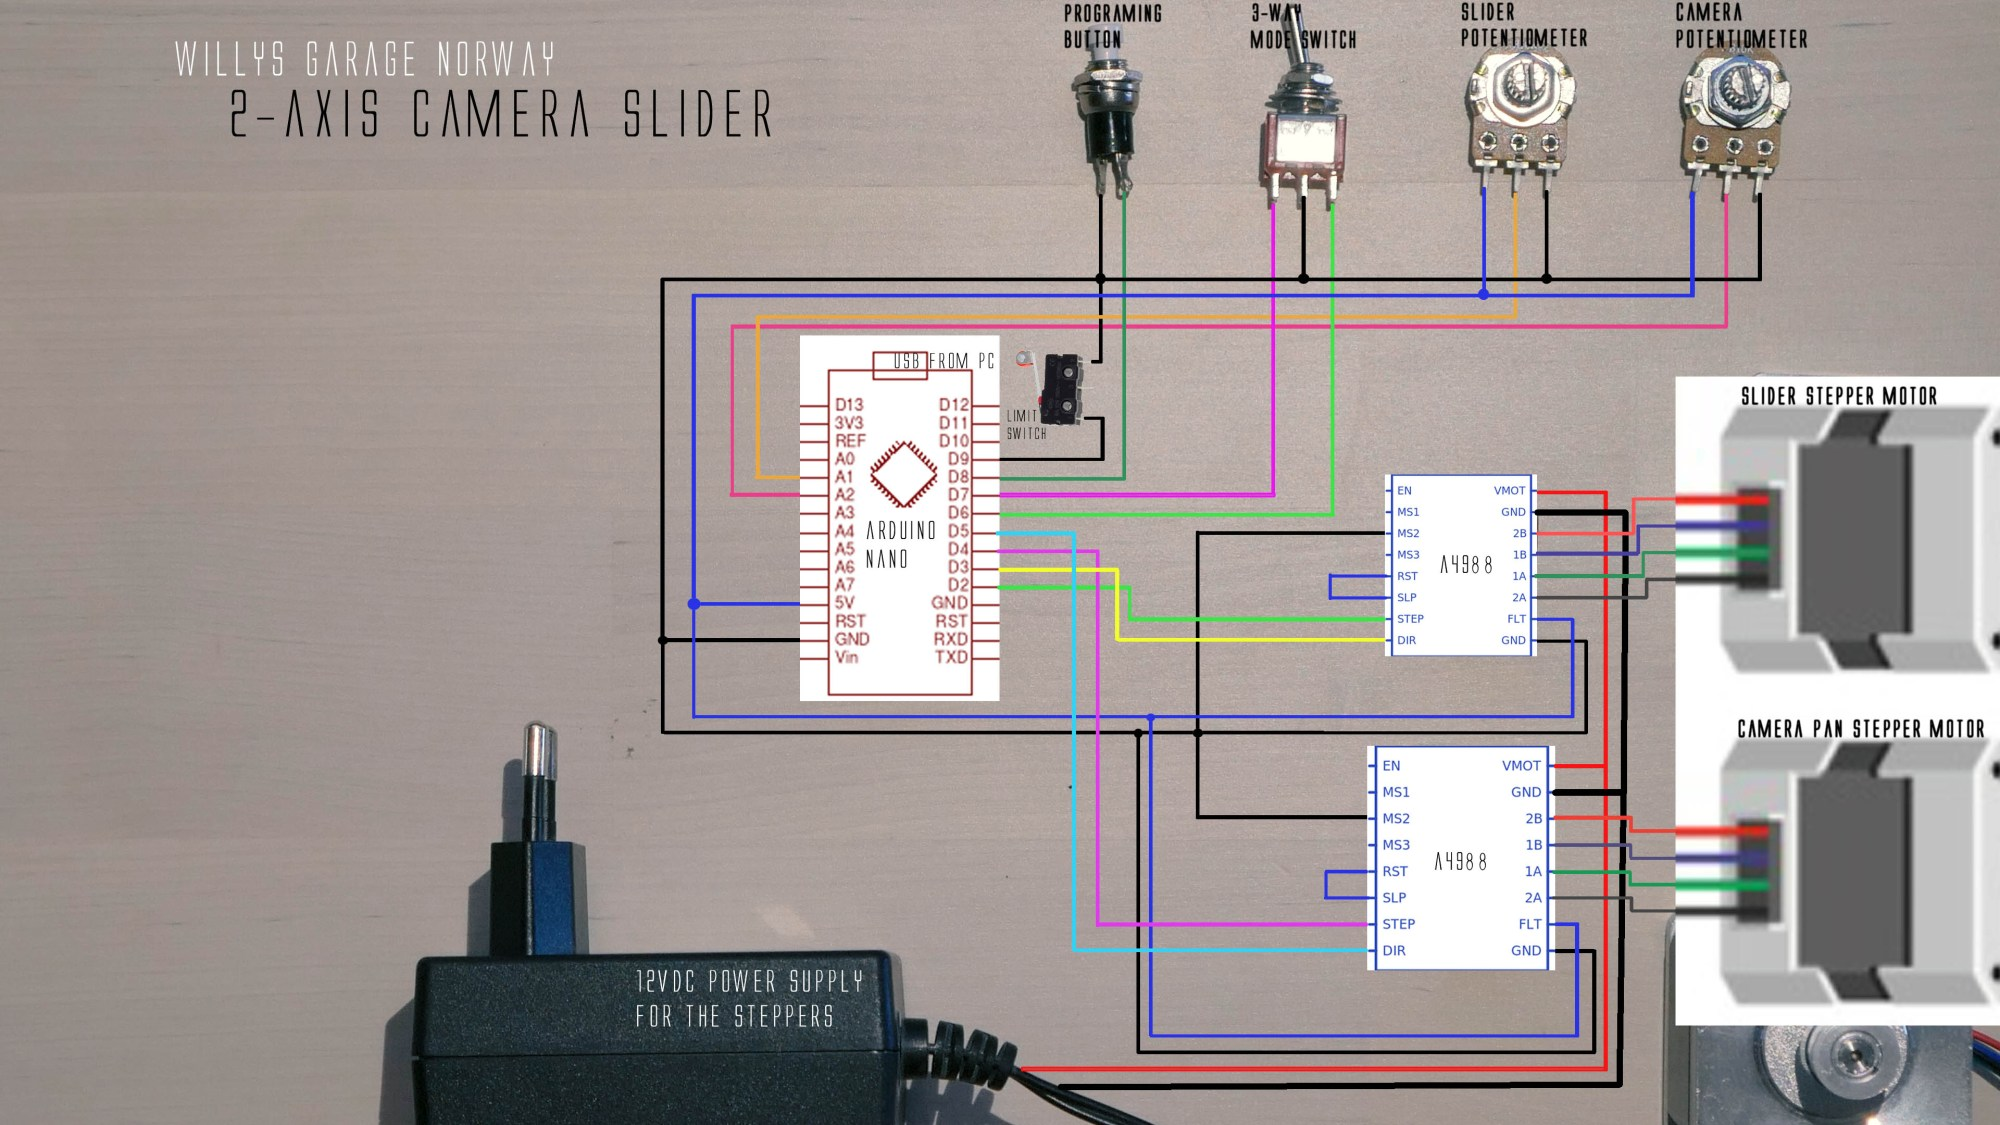 hight resolution of diagrams camera slider 2 axis cnc shield